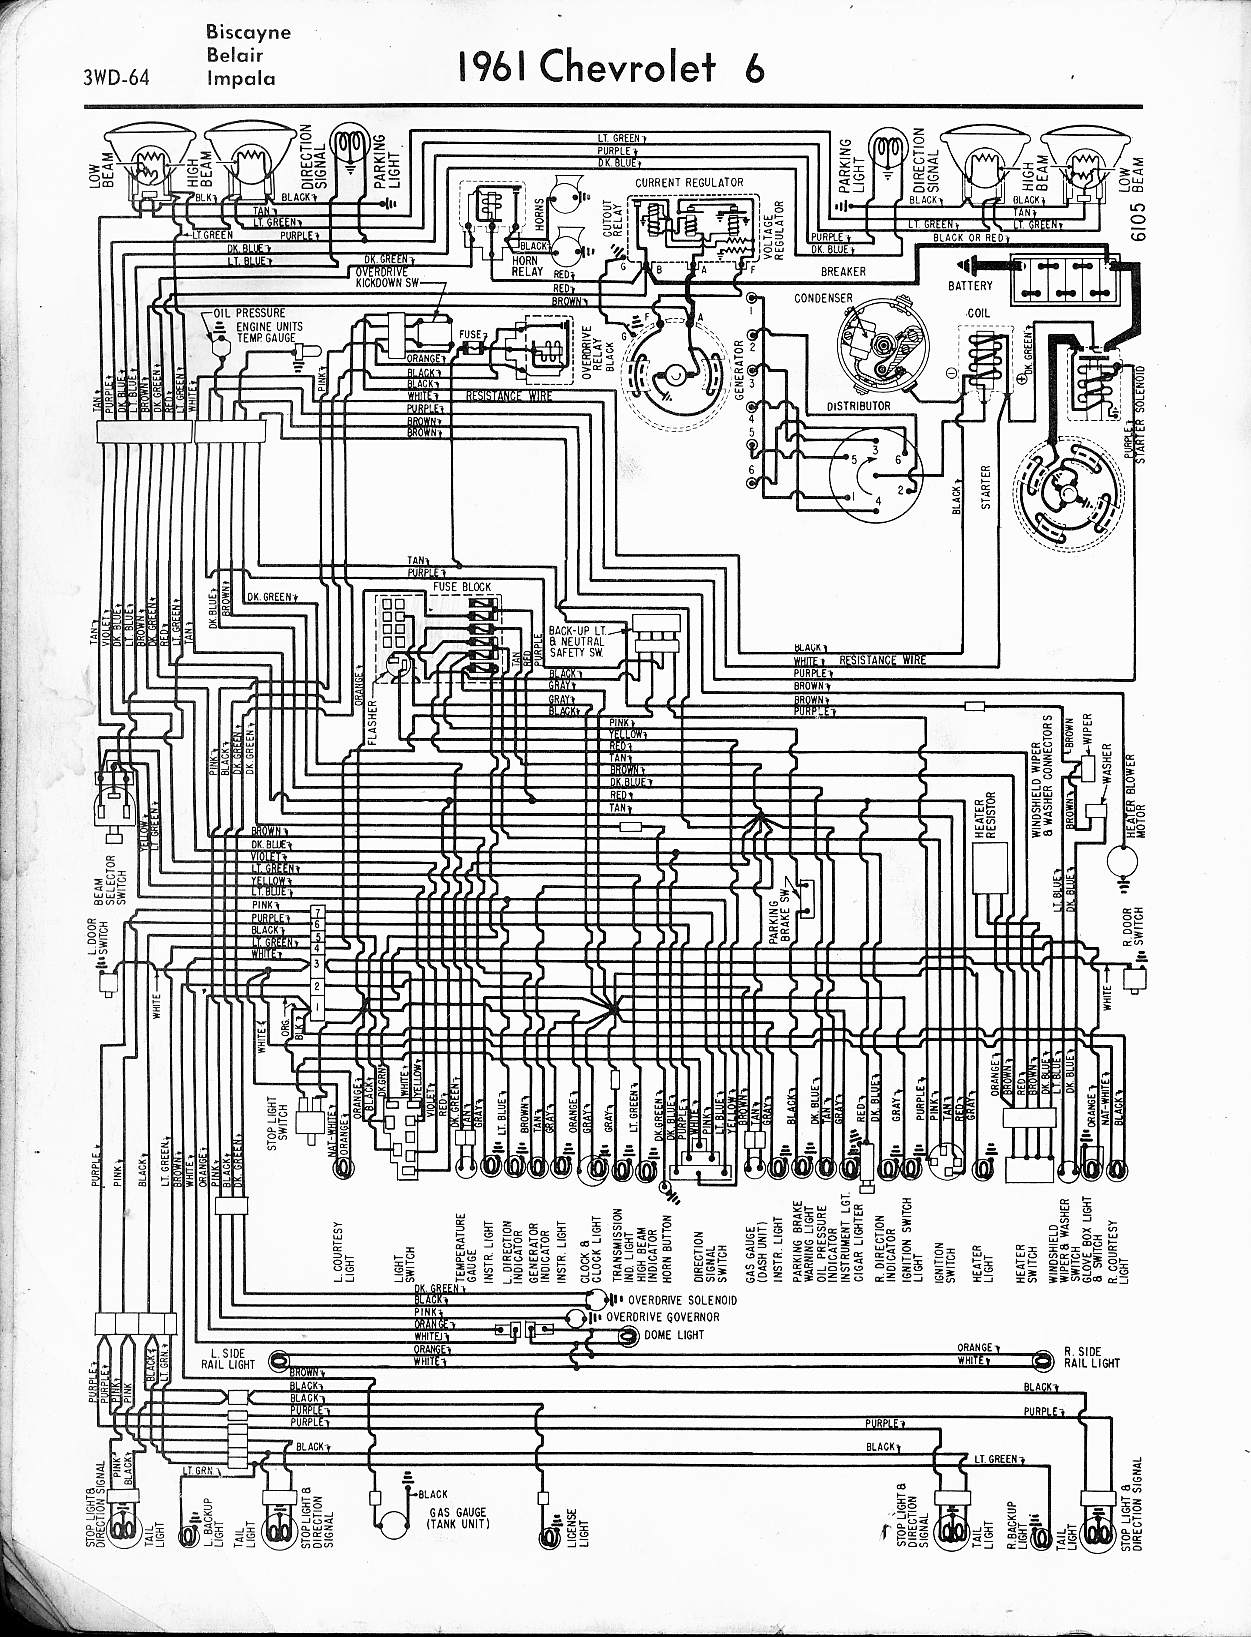 Swell 65 Chevy C10 Wiring Diagram Wiring Library Wiring Cloud Overrenstrafr09Org